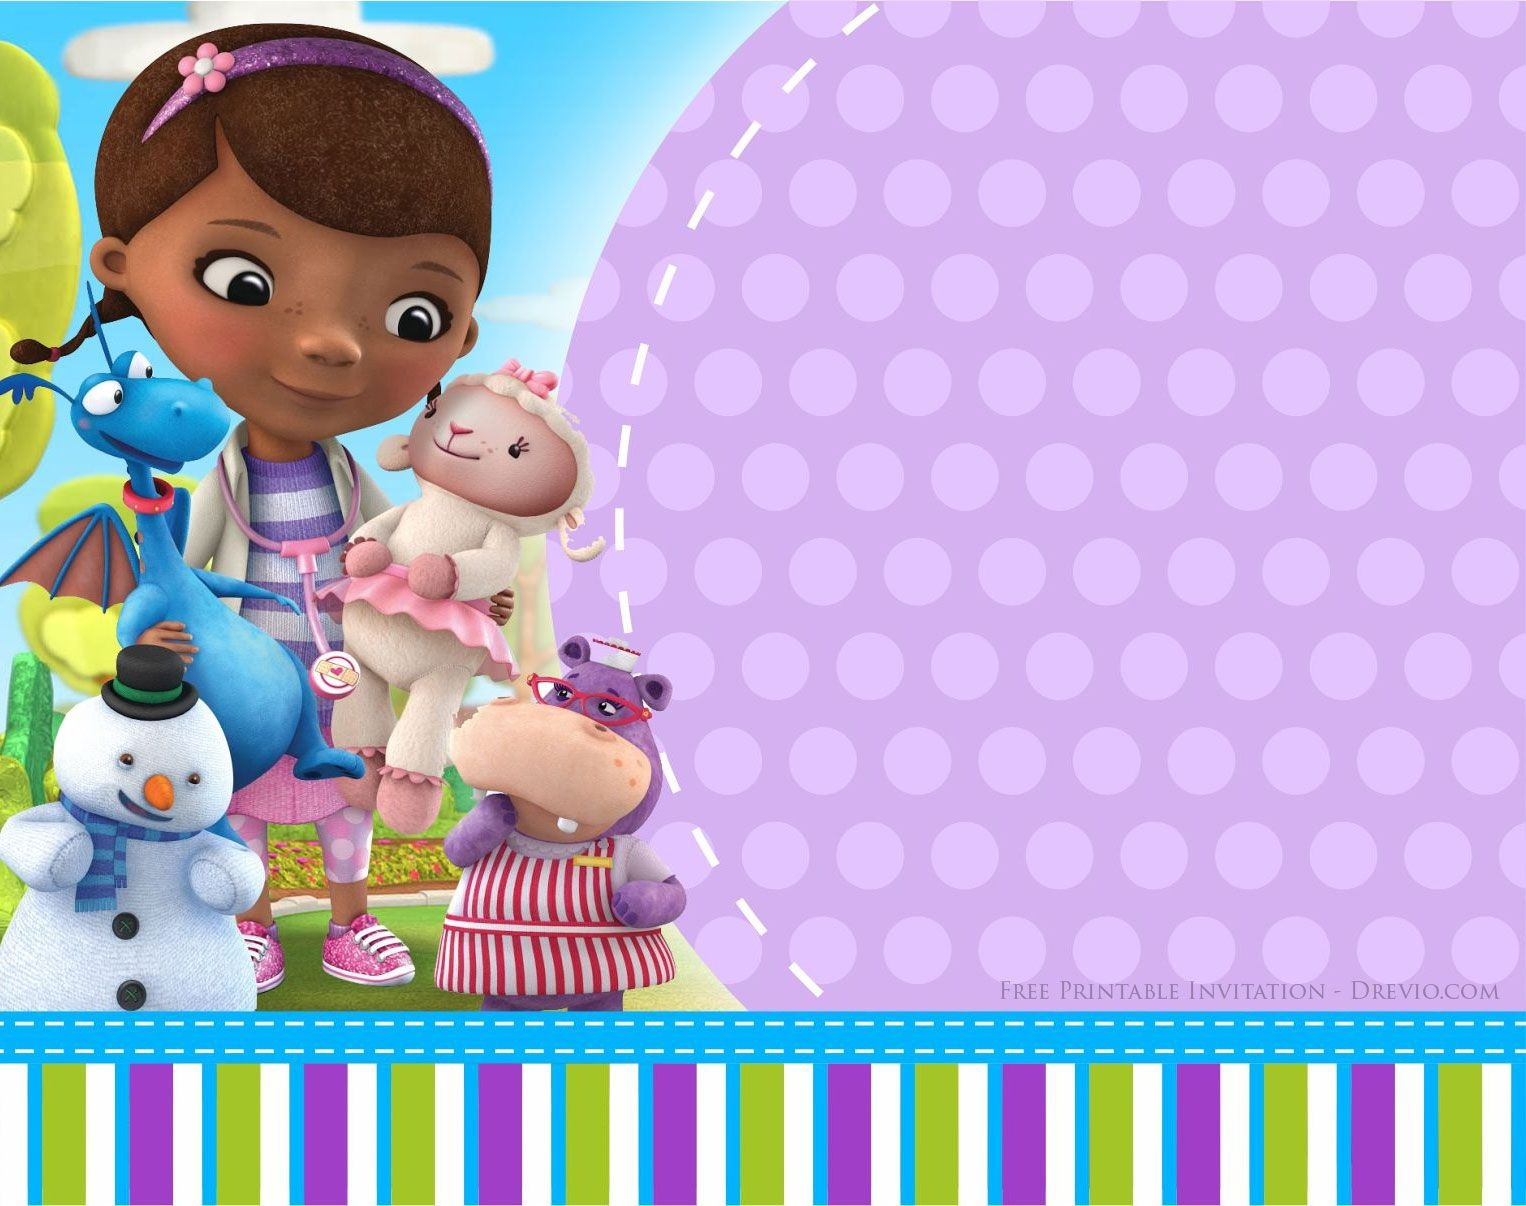 Doc Mcstuffins Birthday Invitation | Party Printables | Doc - Doctor Who Party Invitations Printable Free